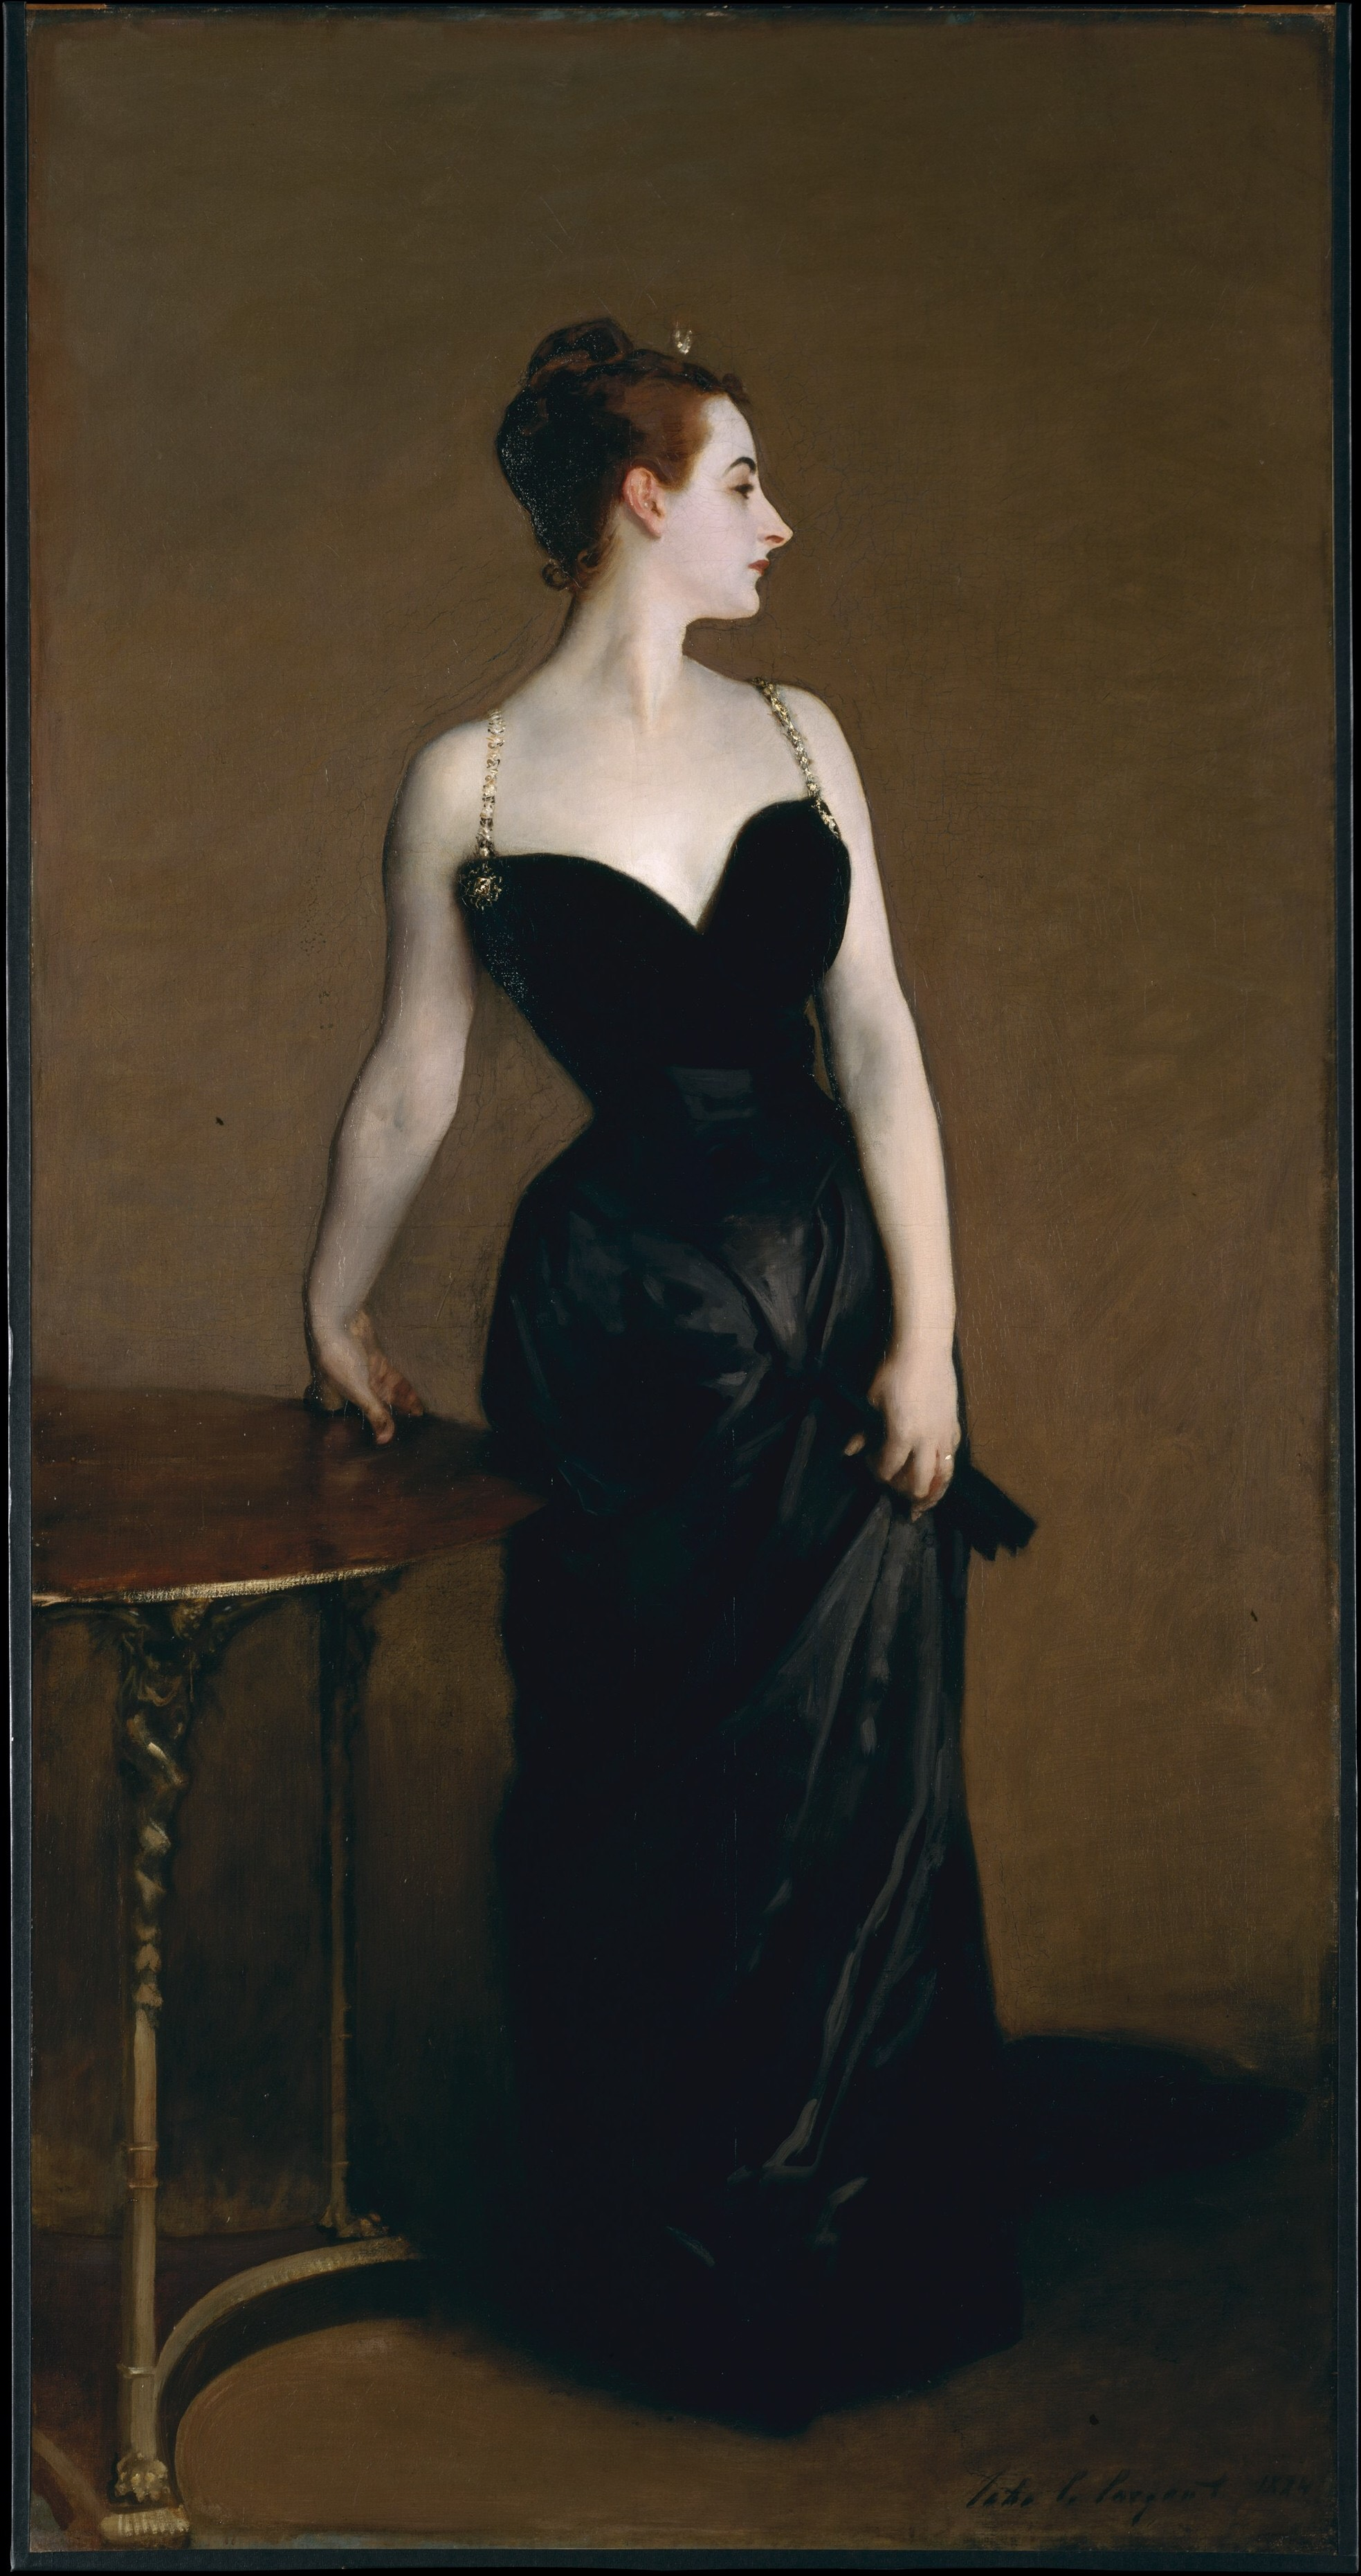 Madam X by John Singer Sargent {Image from The Met Public Access}